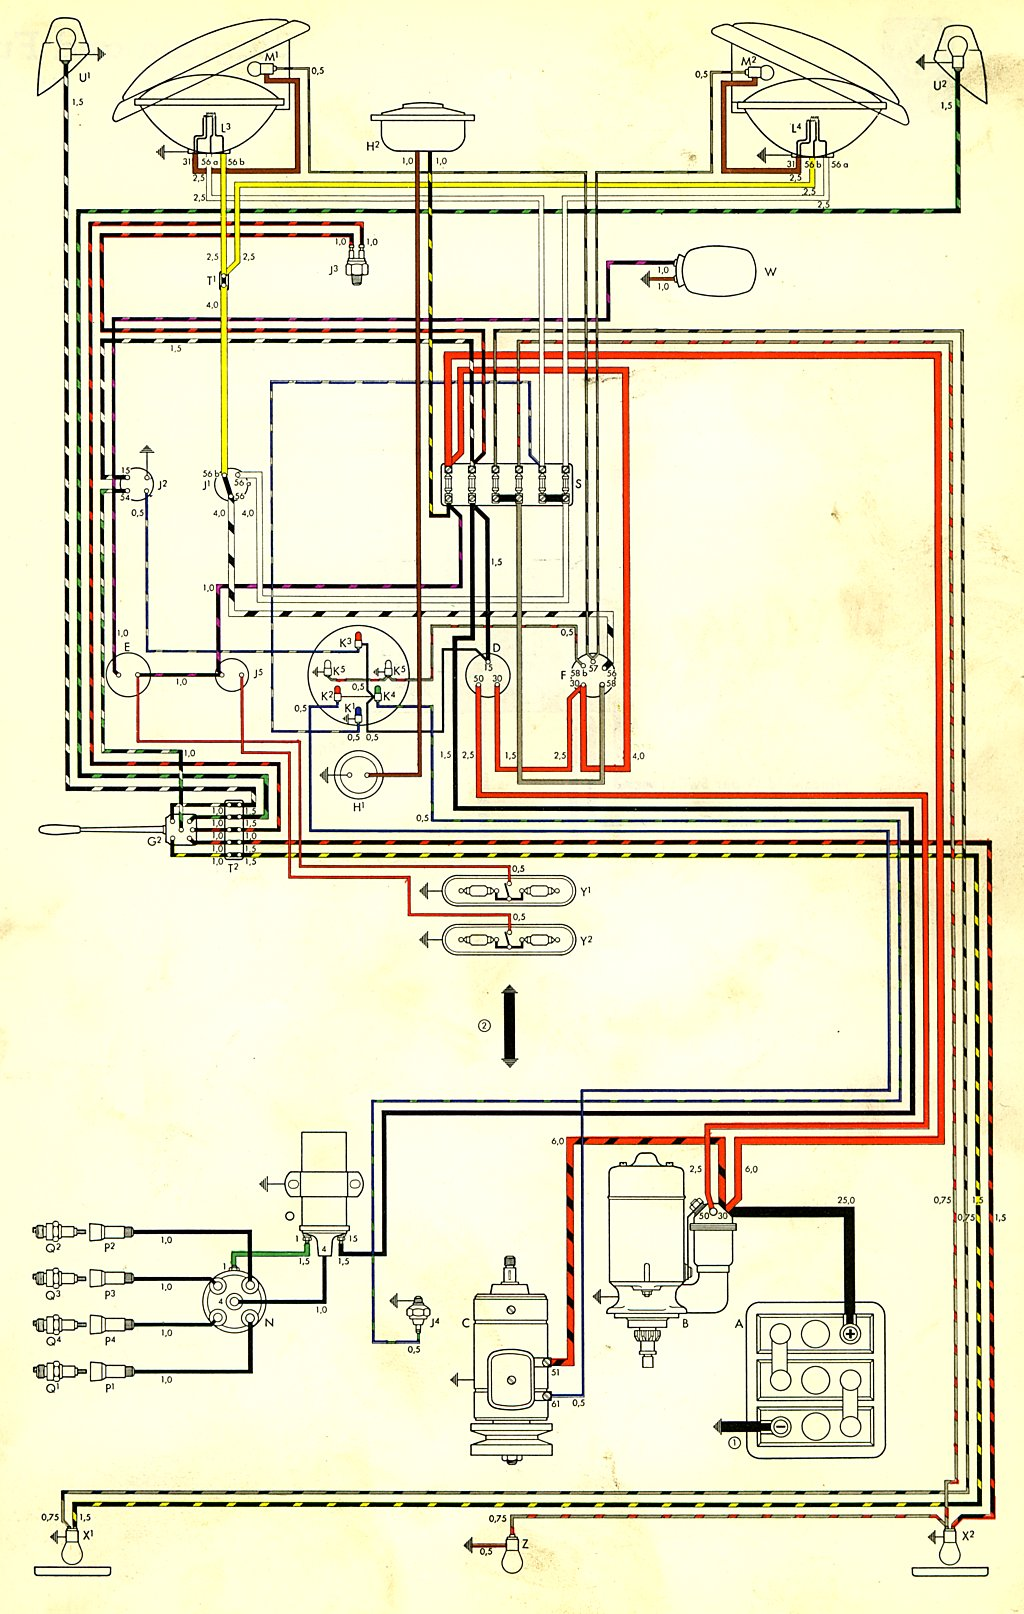 hight resolution of thesamba com type 2 wiring diagrams 73 vw bug wiring diagram 2003 vw wiring diagram